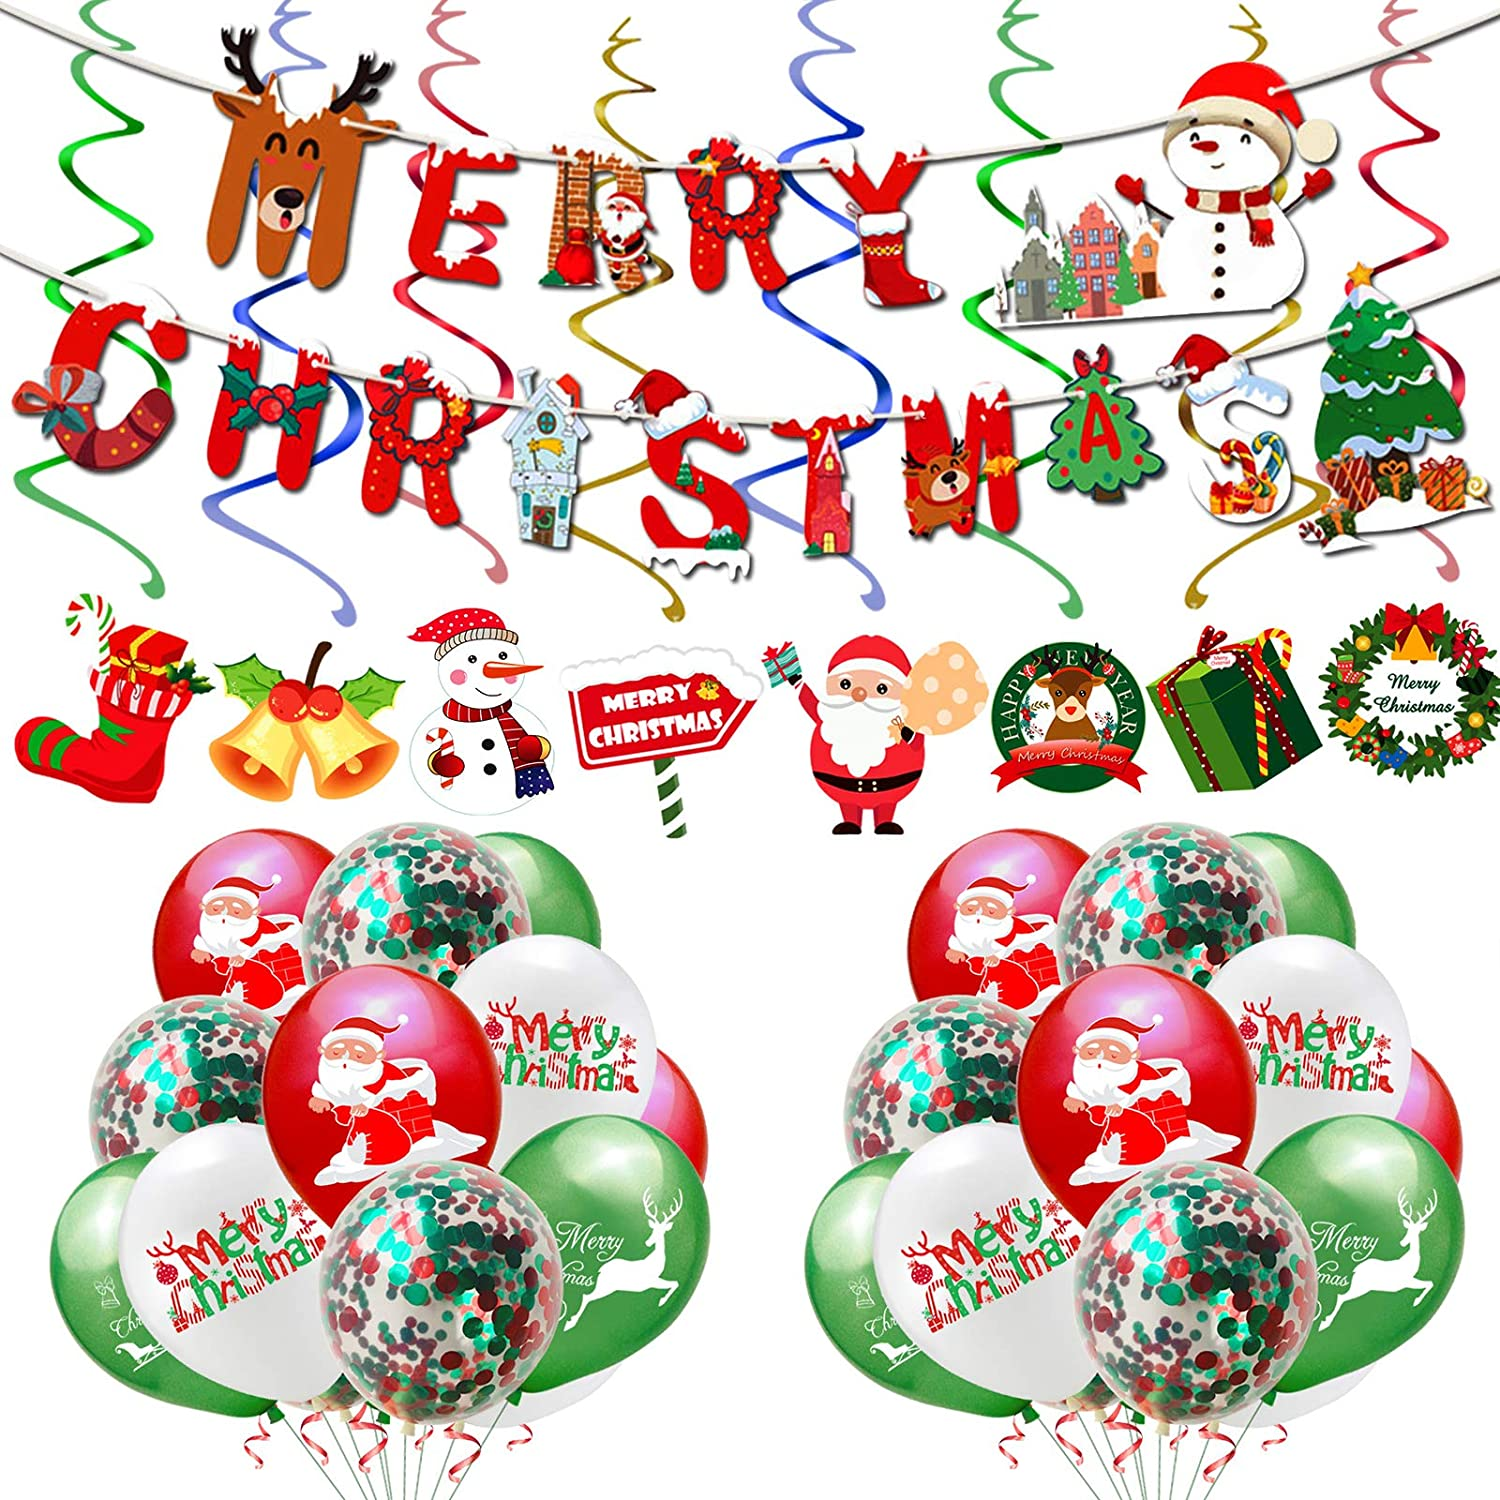 Rainmae Christmas Party Decoration Supplies Set - Happy Christmas Banner, Latex Balloons and Hanging Swirls for Christmas Bar Home Decor,Baby Shower, Birthday Party Accessory & Decoration